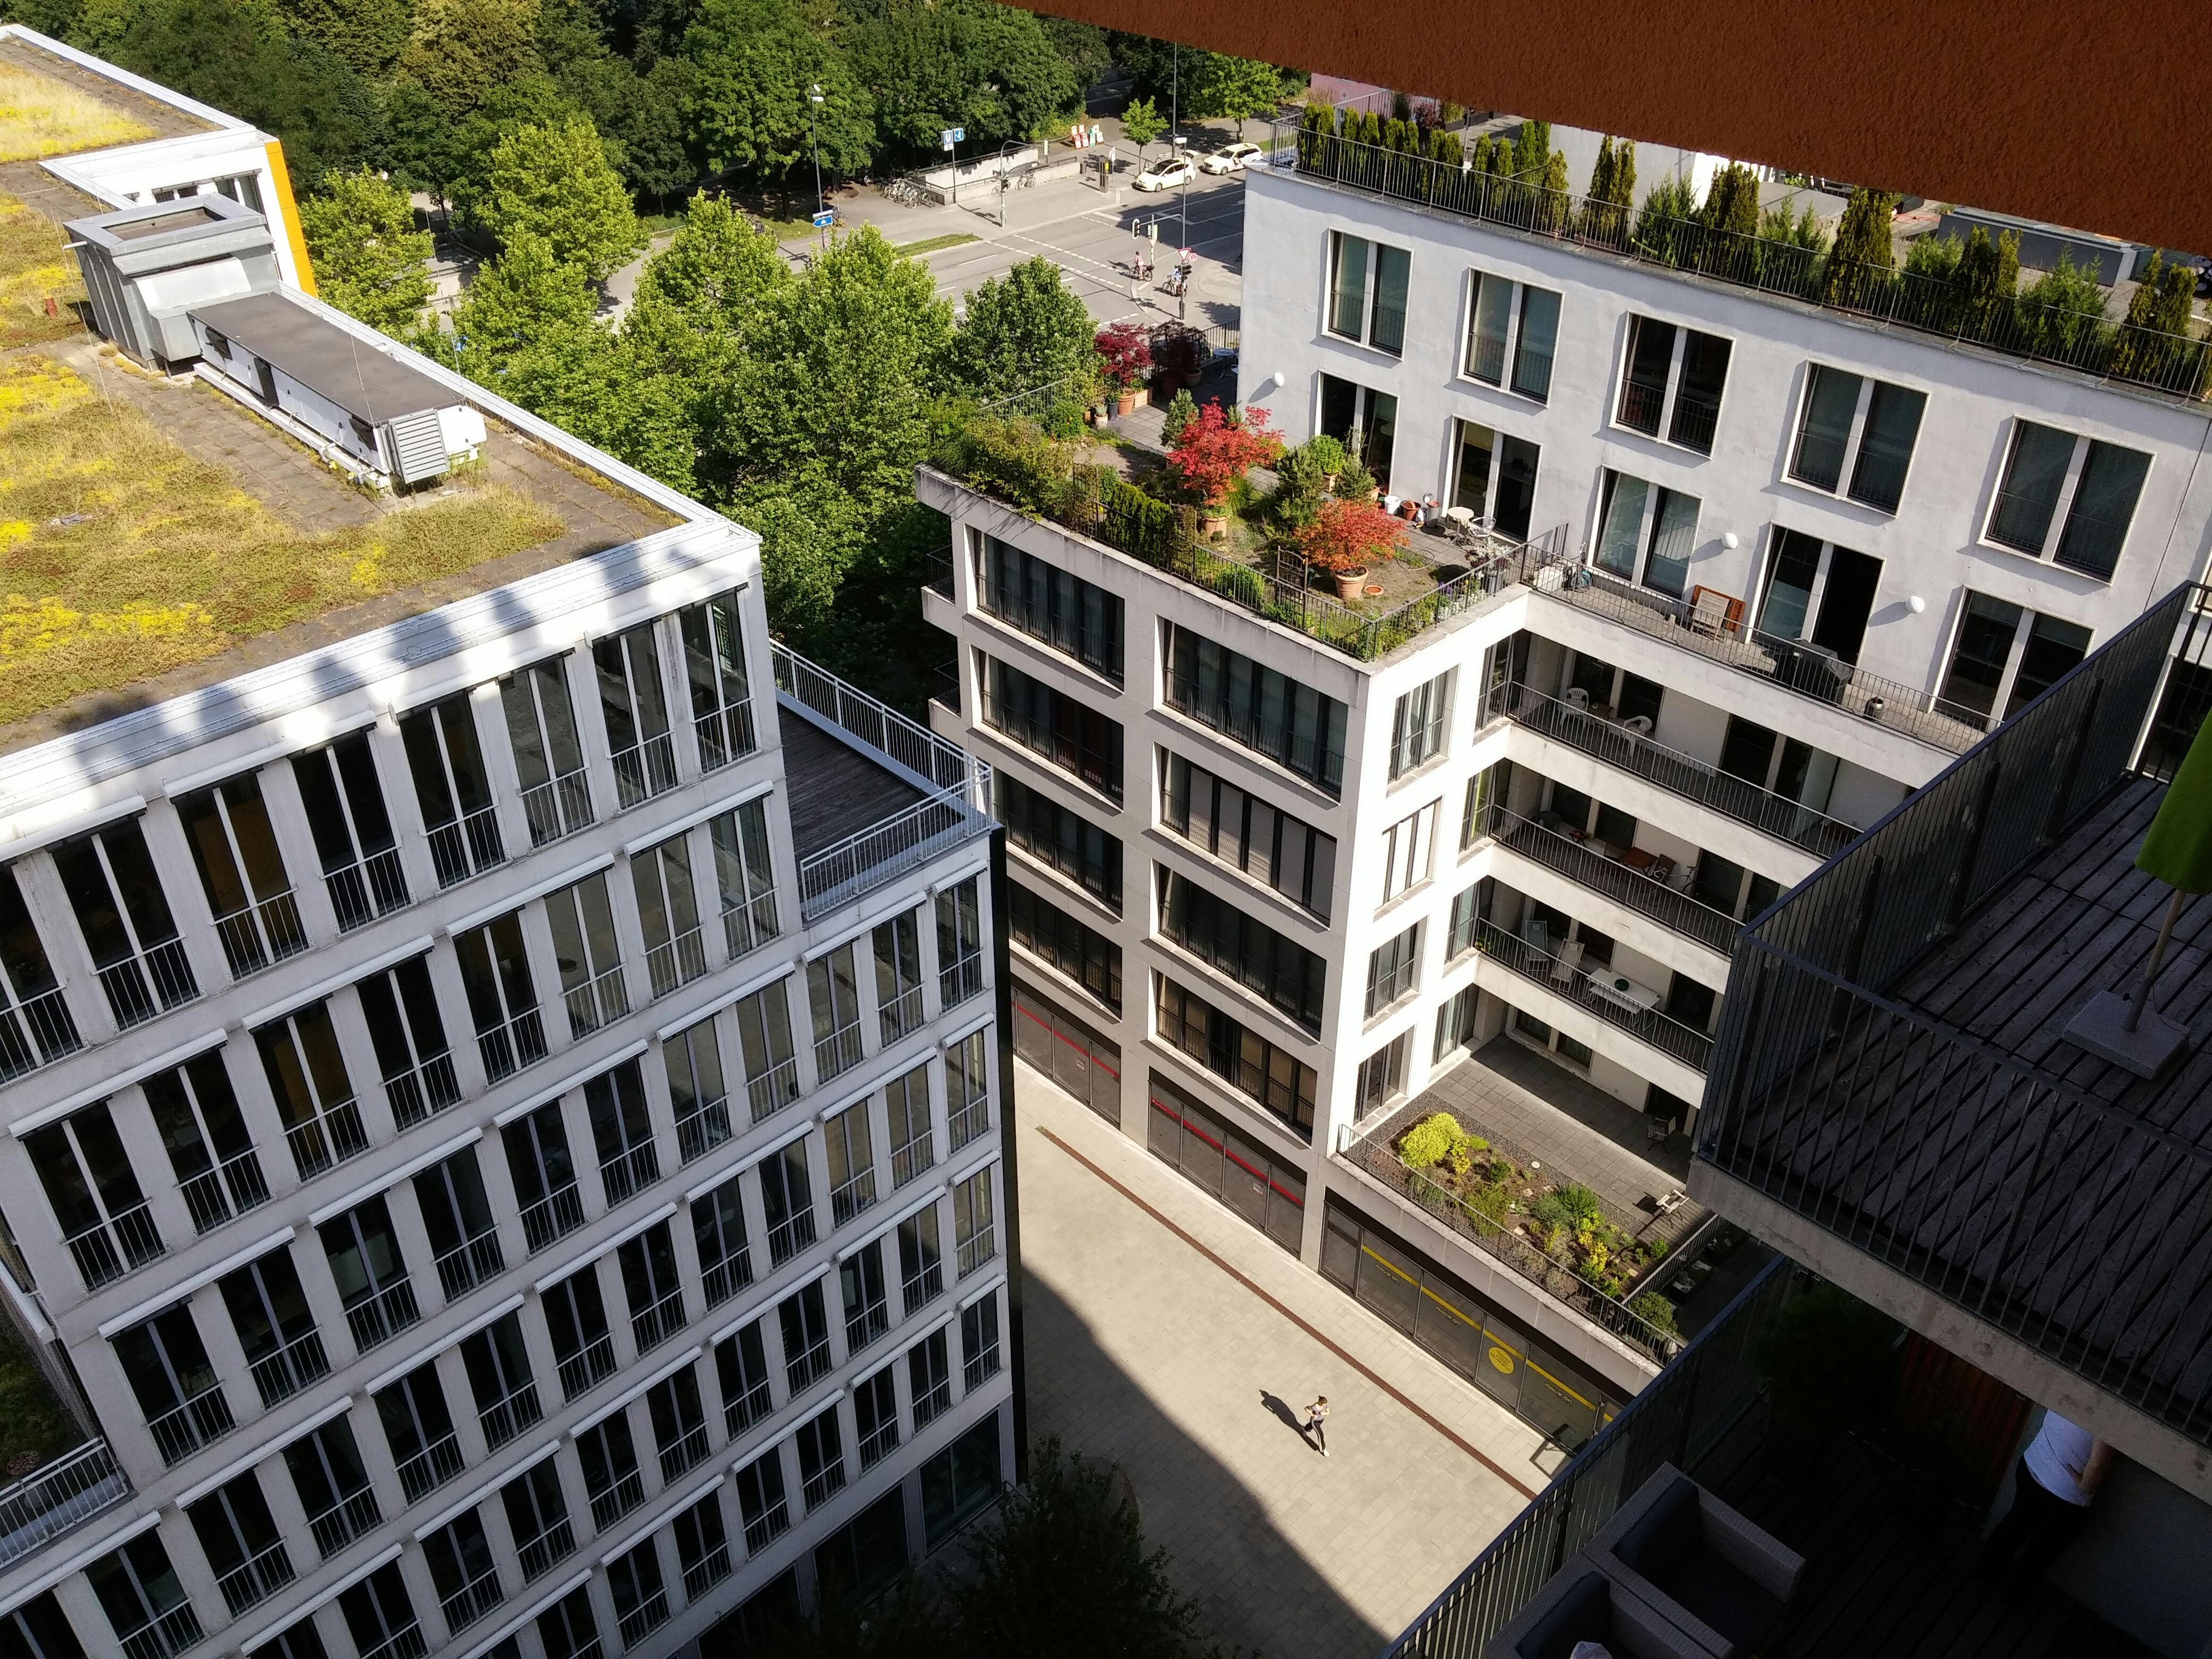 building exterior, architecture, built structure, residential building, residential structure, city, building, window, house, high angle view, apartment, tree, residential district, day, outdoors, no people, balcony, sunlight, modern, roof